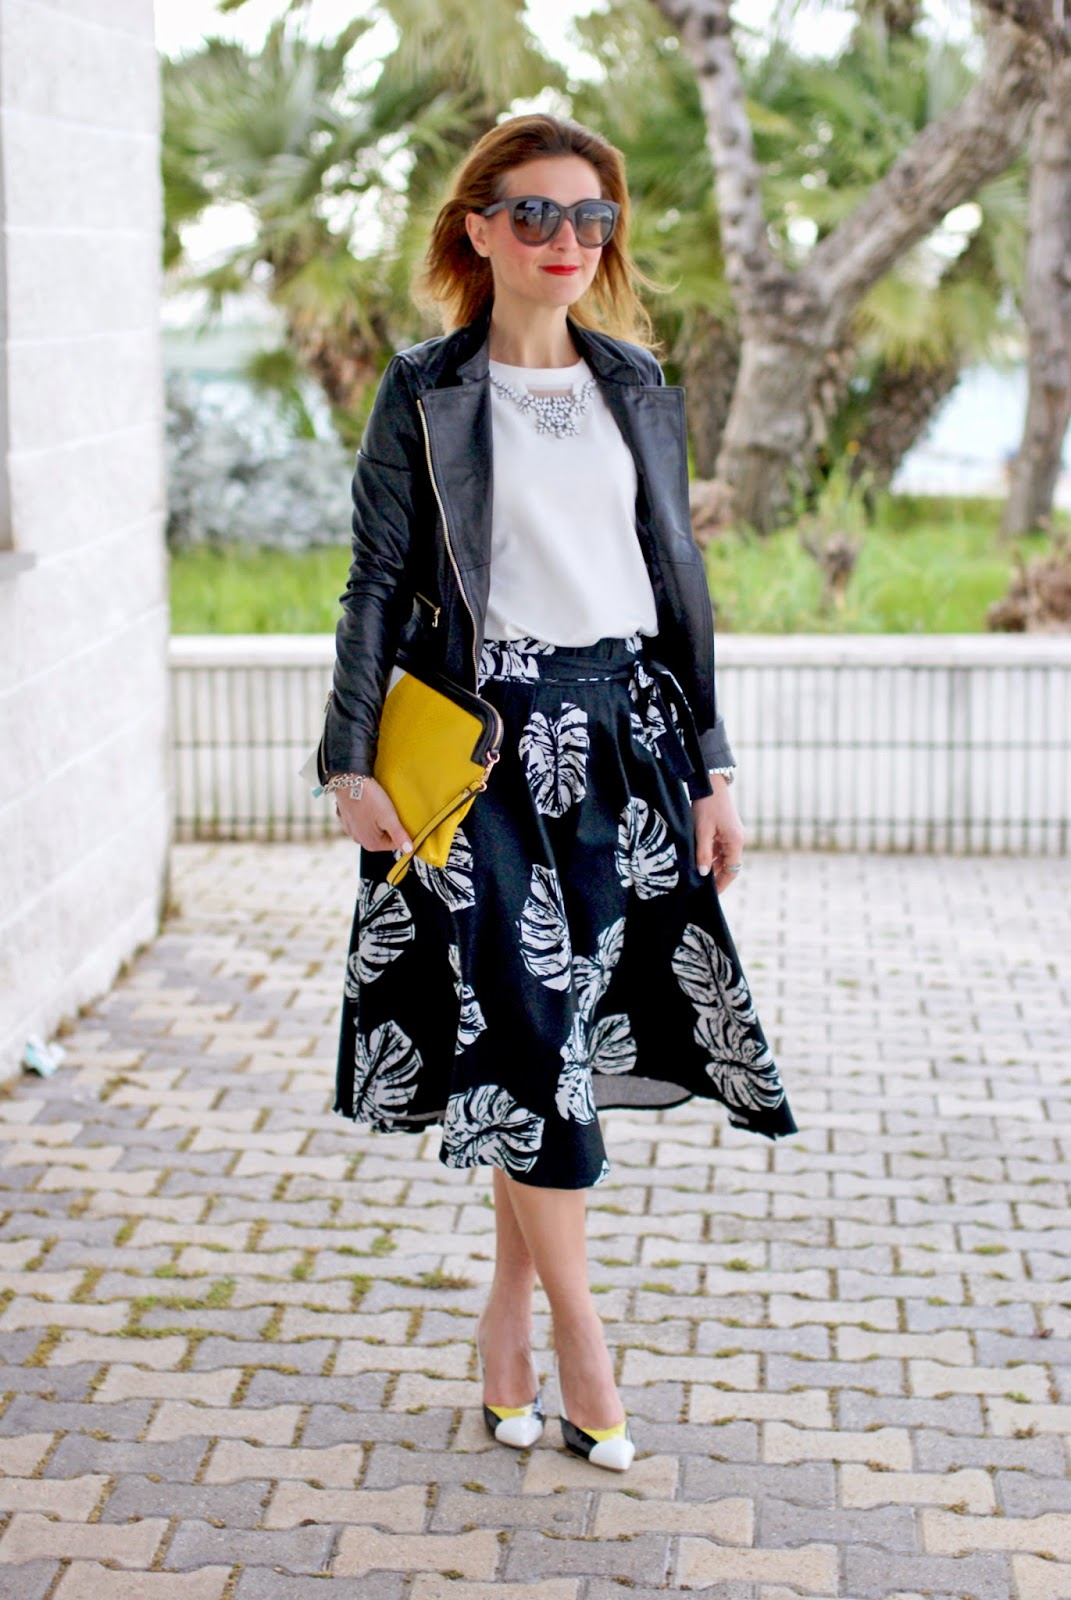 Giorgia & Johns felpa pietre e tulle, leather peplum jacket, palm leaves print skirt, Fashion and Cookies, fashion blogger